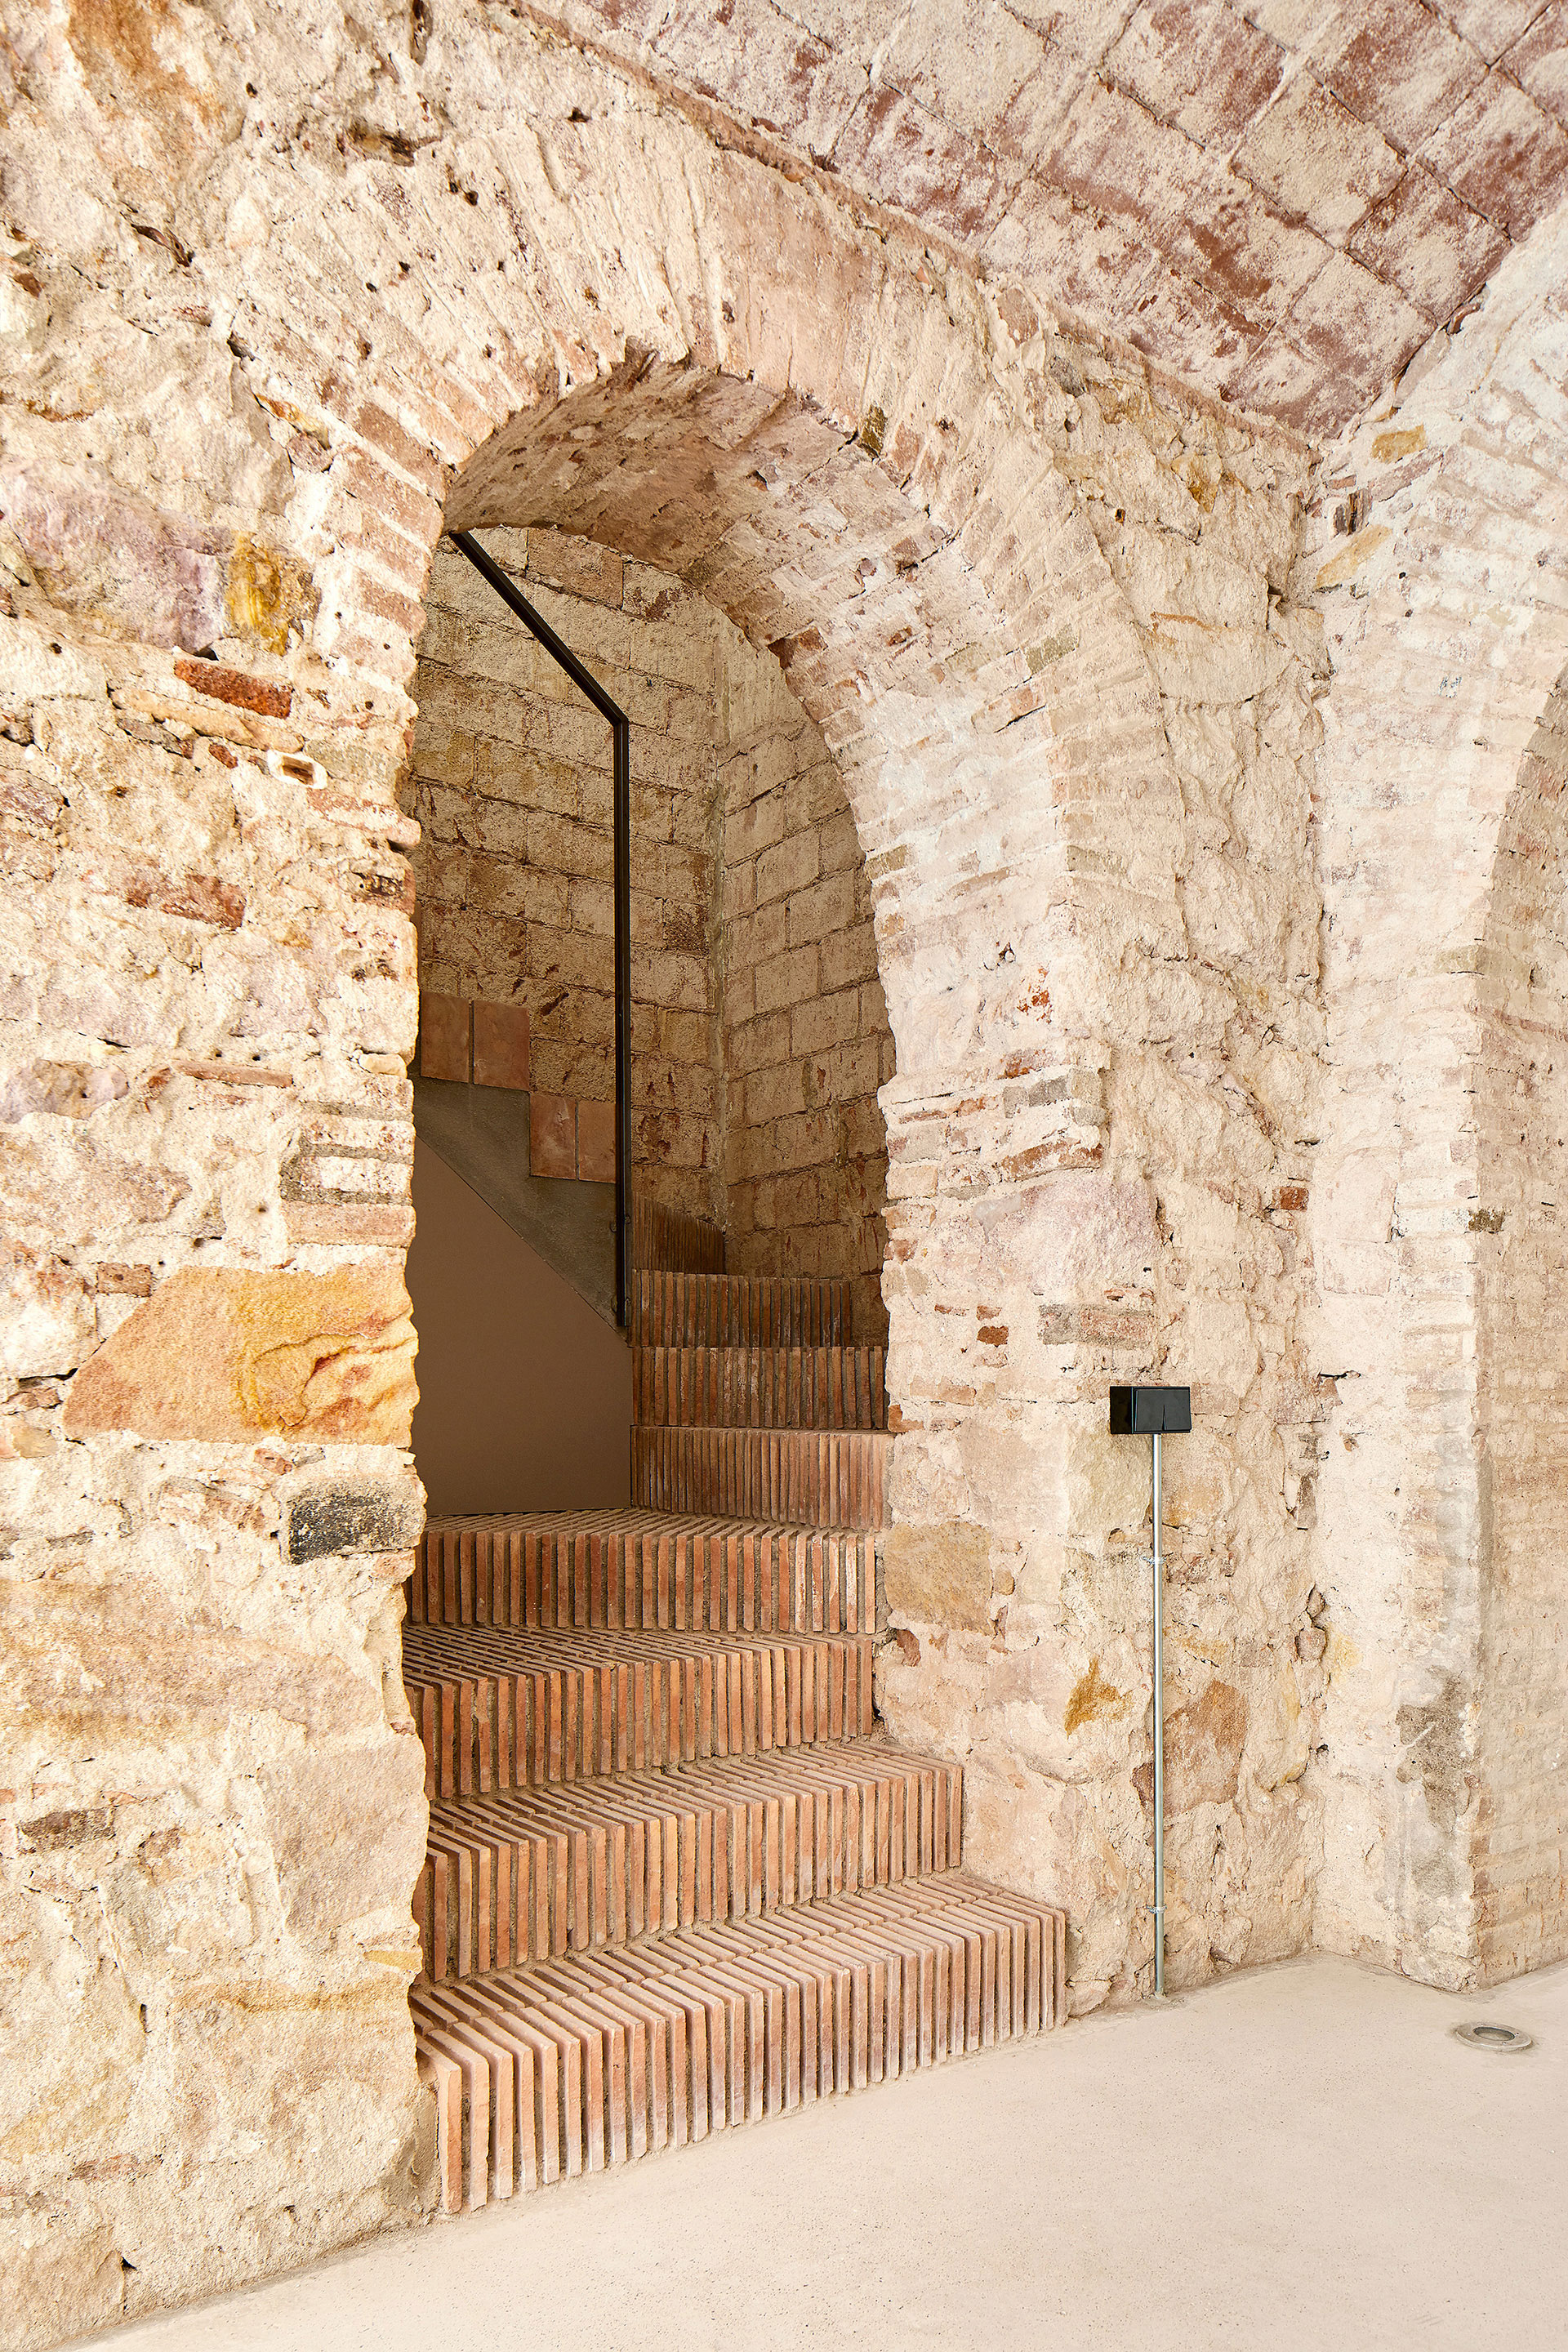 A secondary stairwell connecting the three-storeys| Triplex at Sant Antoni | Valentí Albareda| STIR